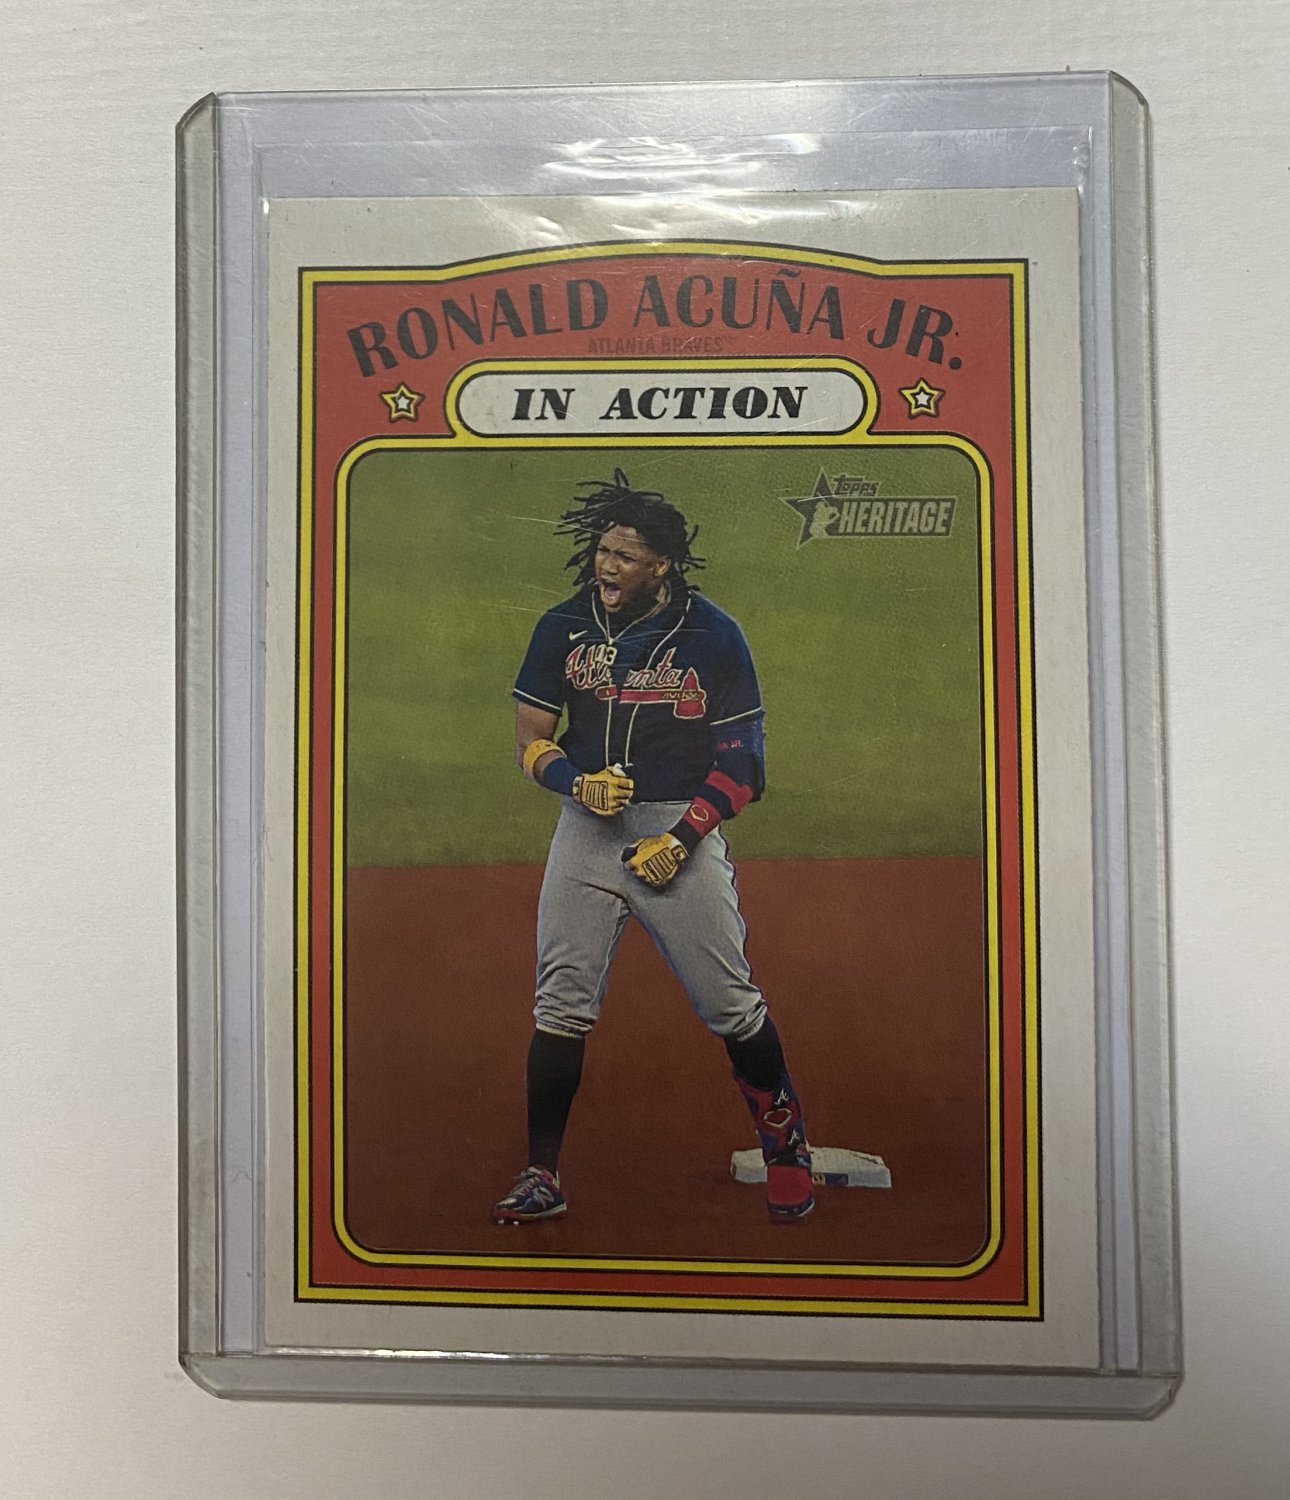 2021 Topps Heritage Ronald Acuna Jr. #300 In Action